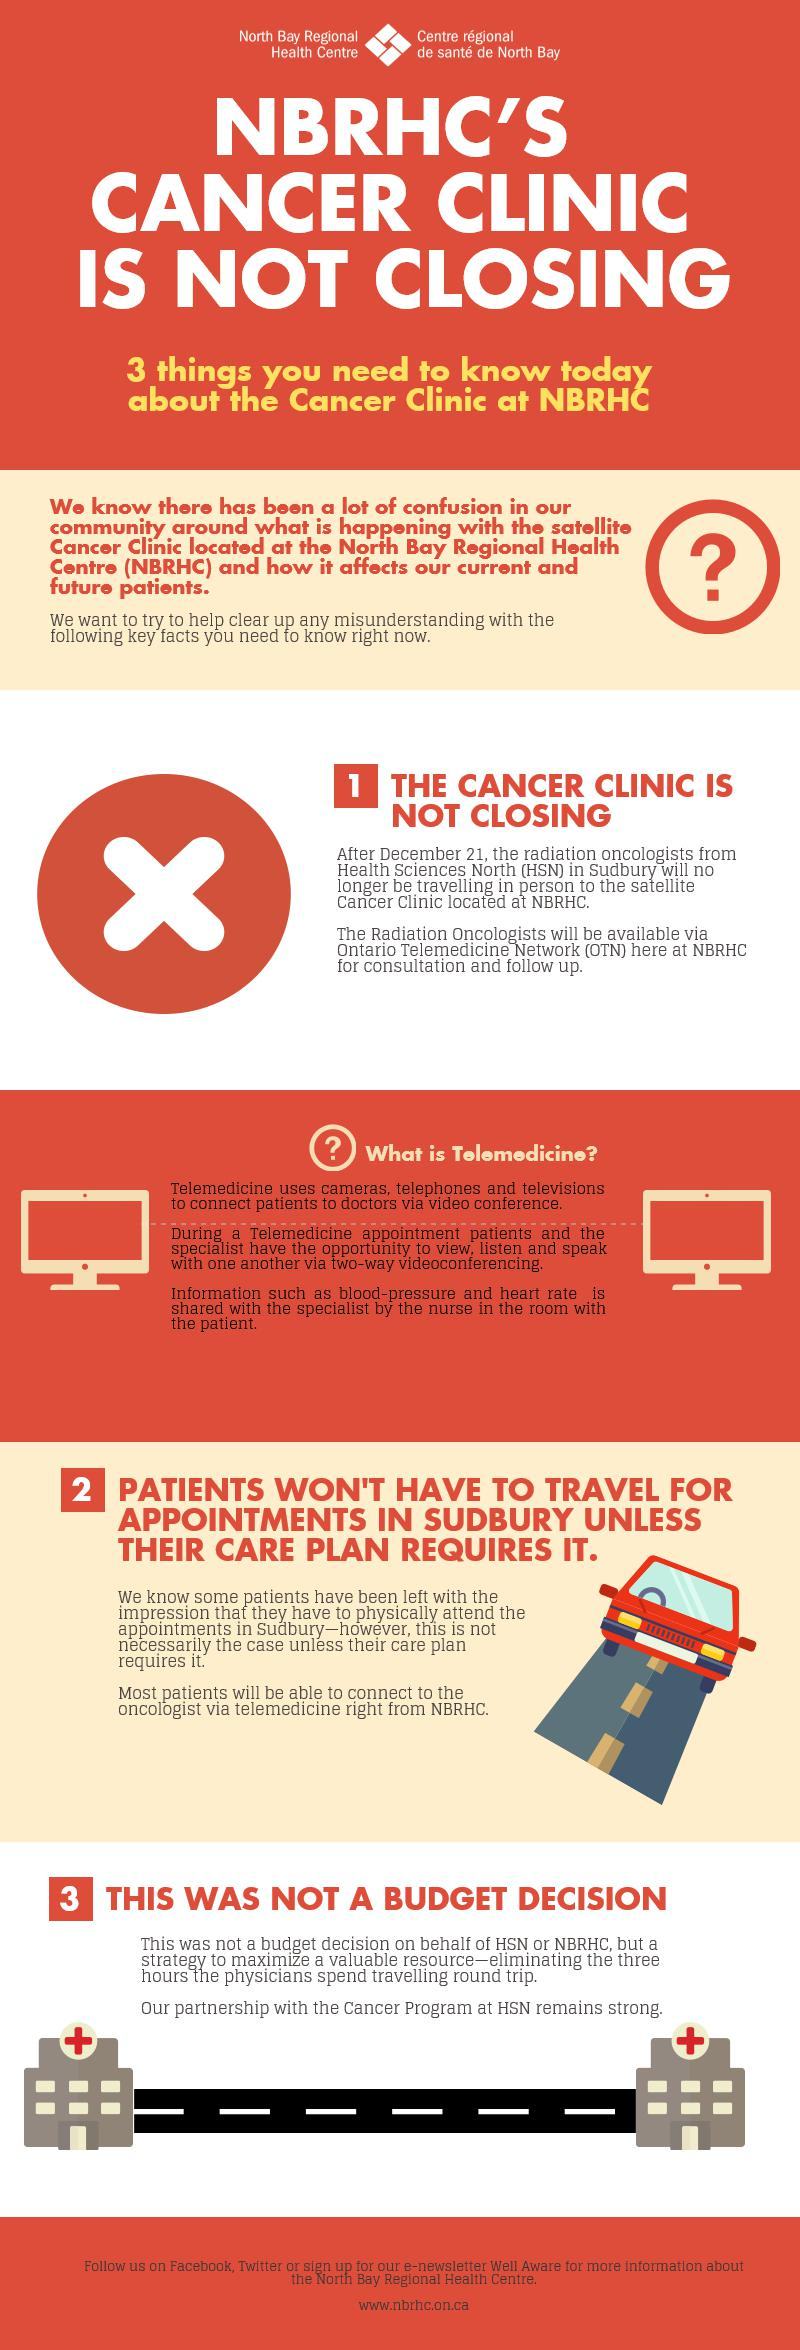 cancer-clinic-not-closing-infographic